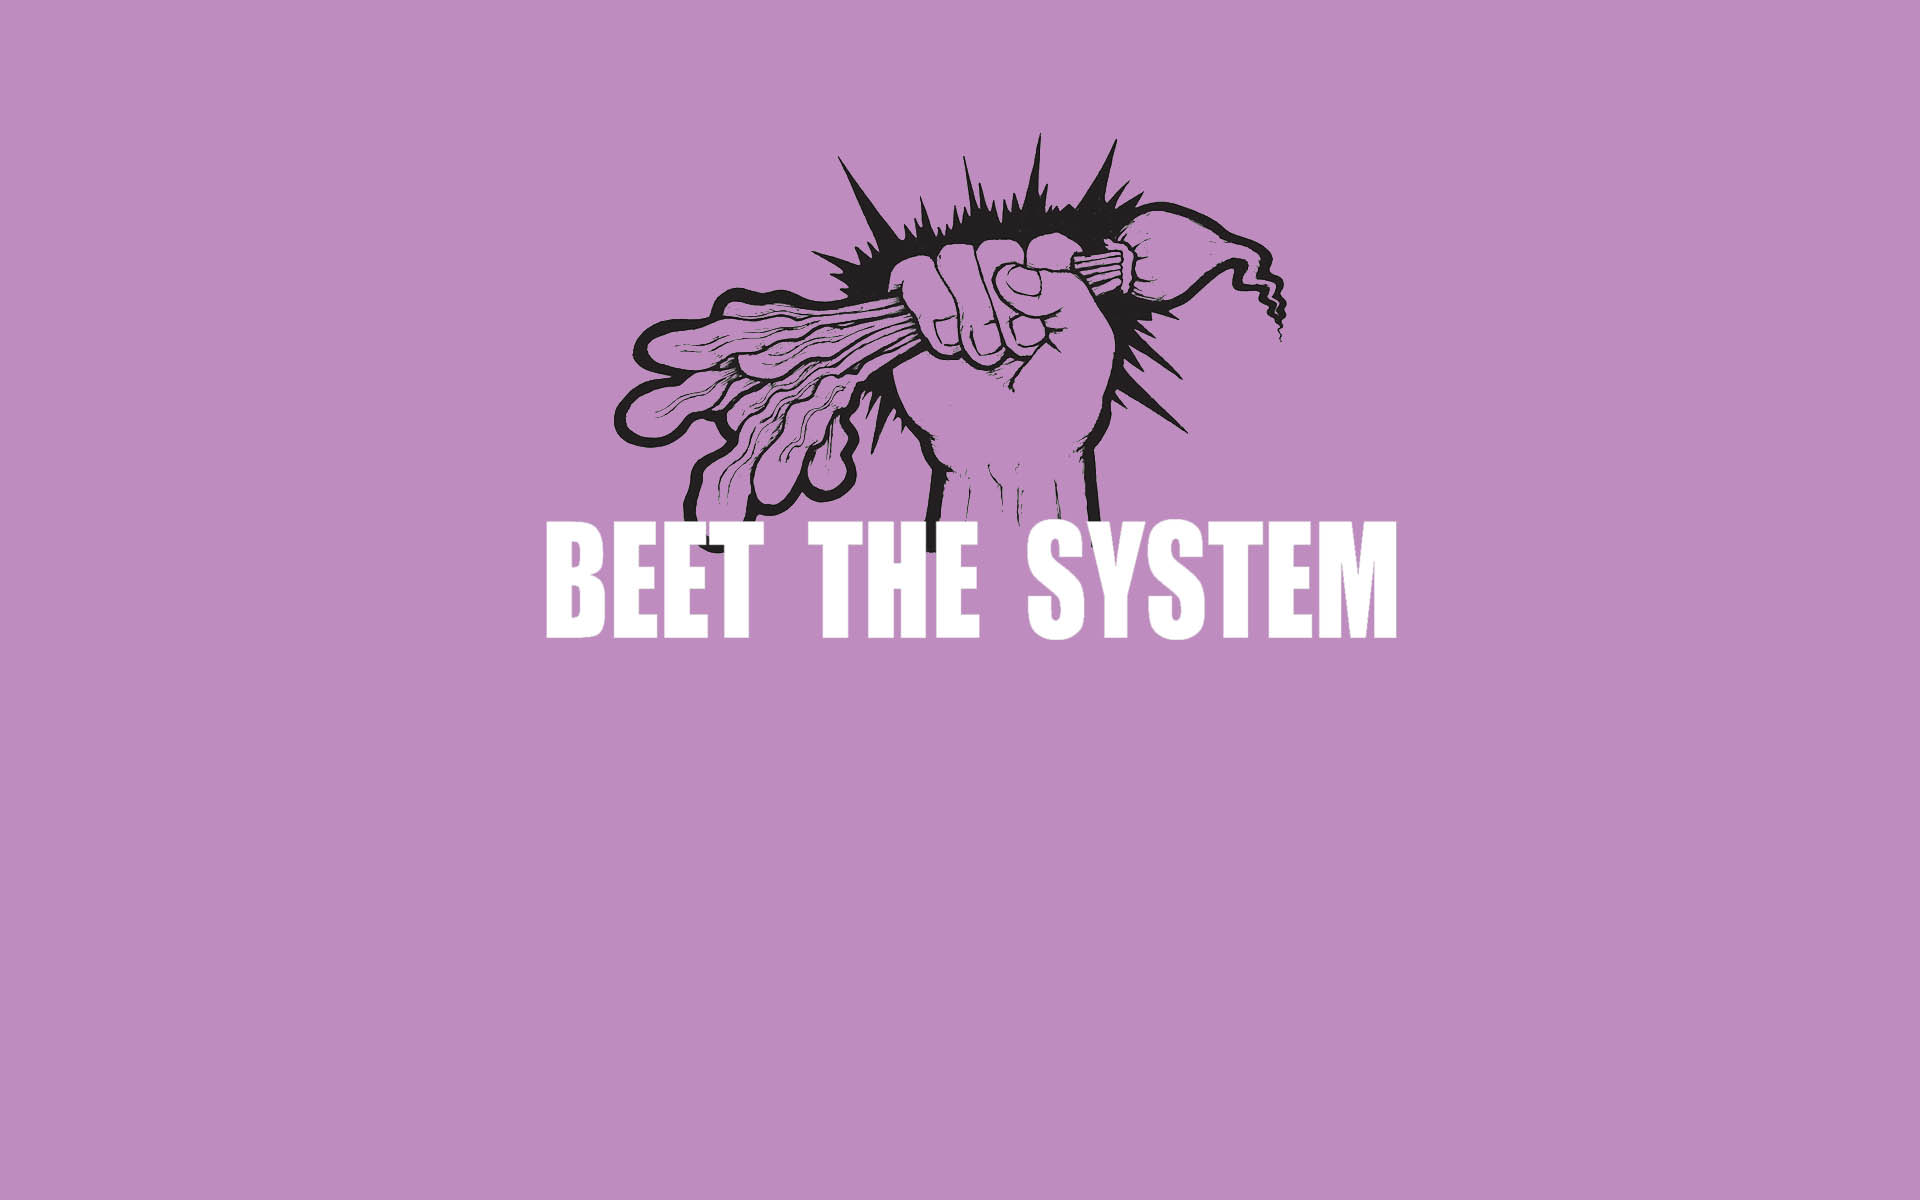 Beet the System